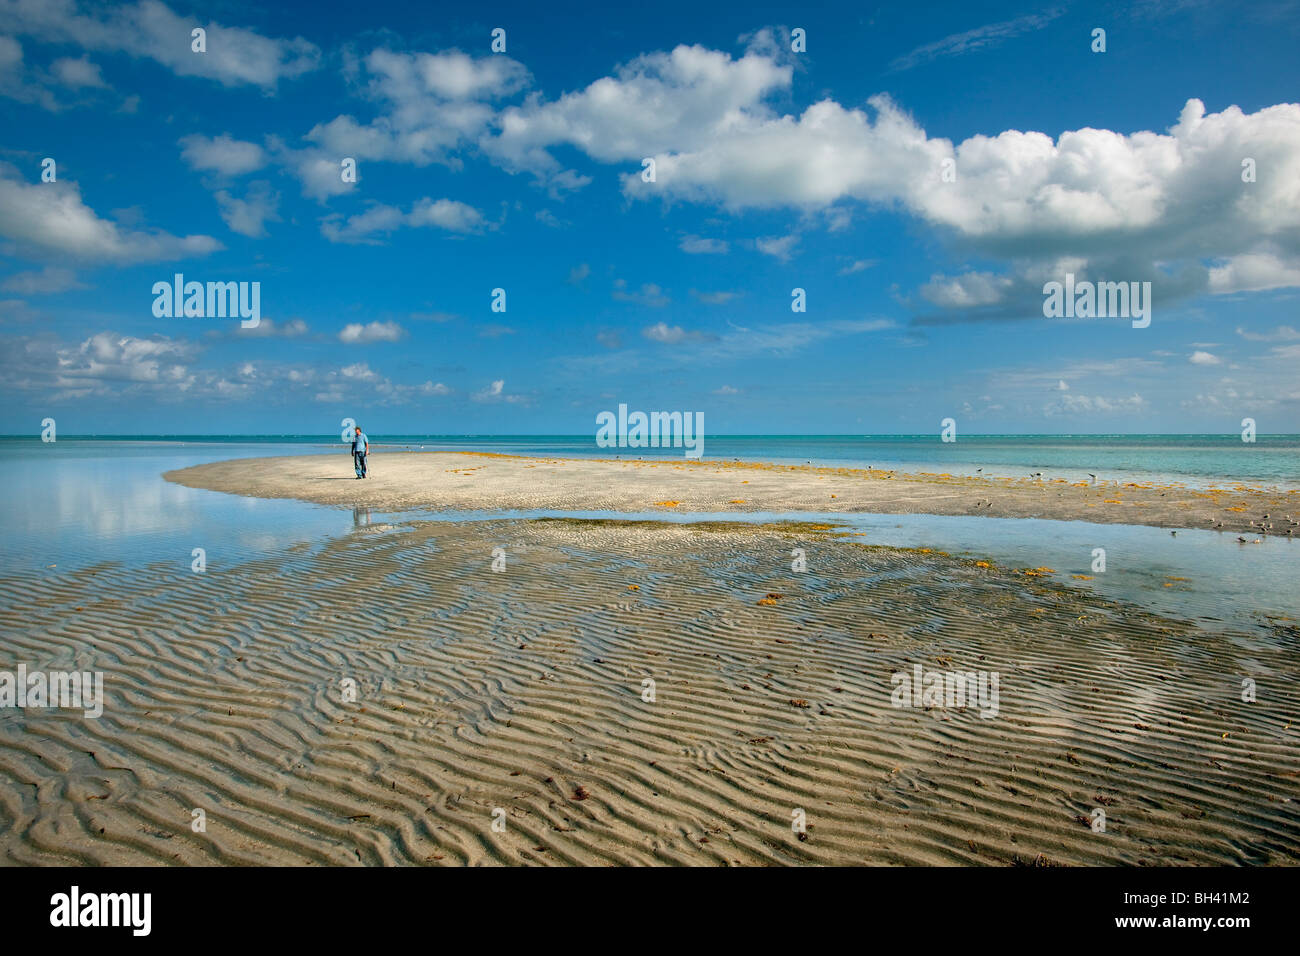 Rippled Sand, Low Tide, Key Biscayne, Florida - Stock Image